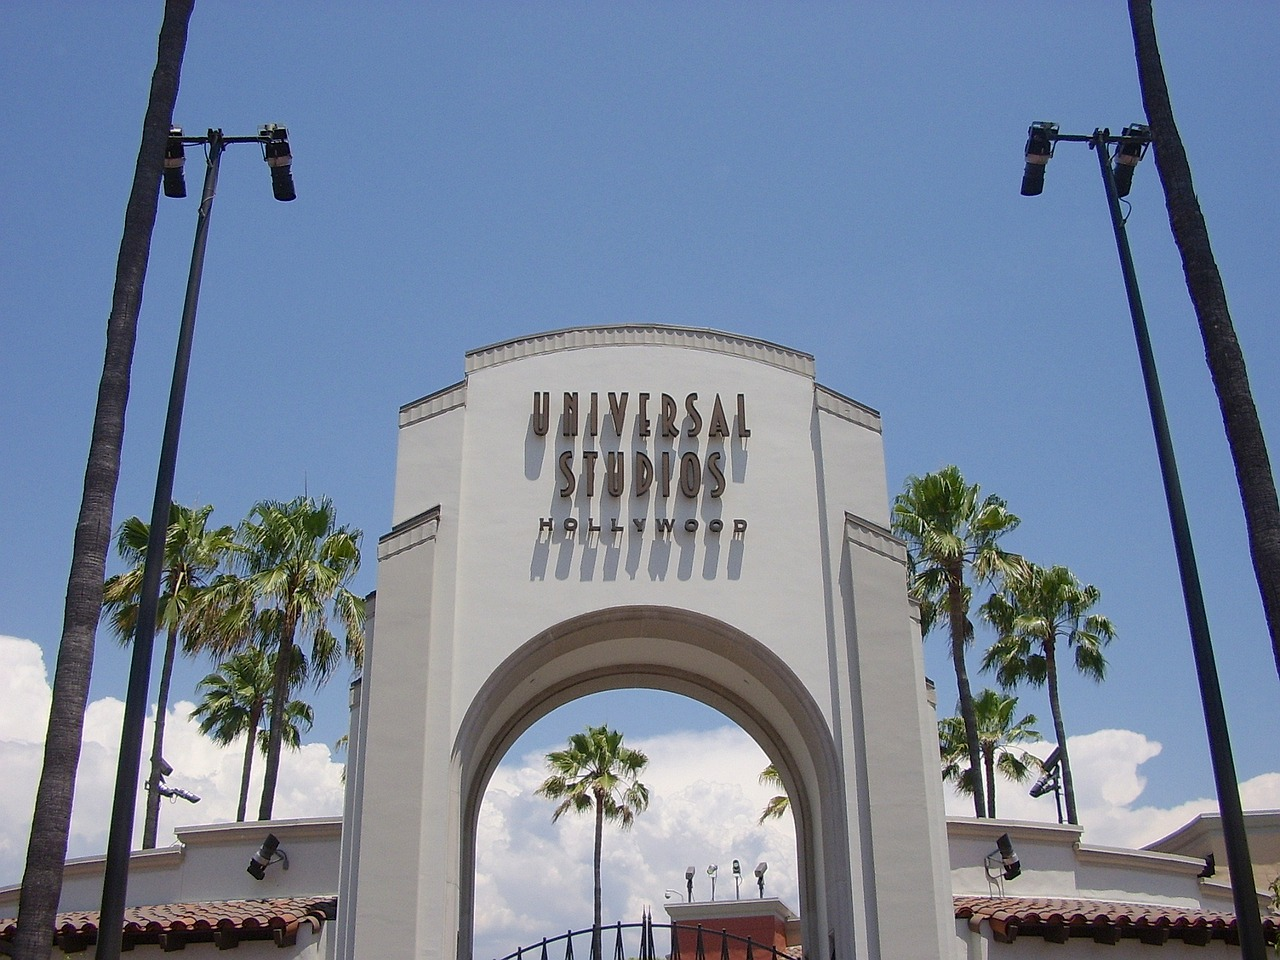 The gates to Universal Pictures Studios.